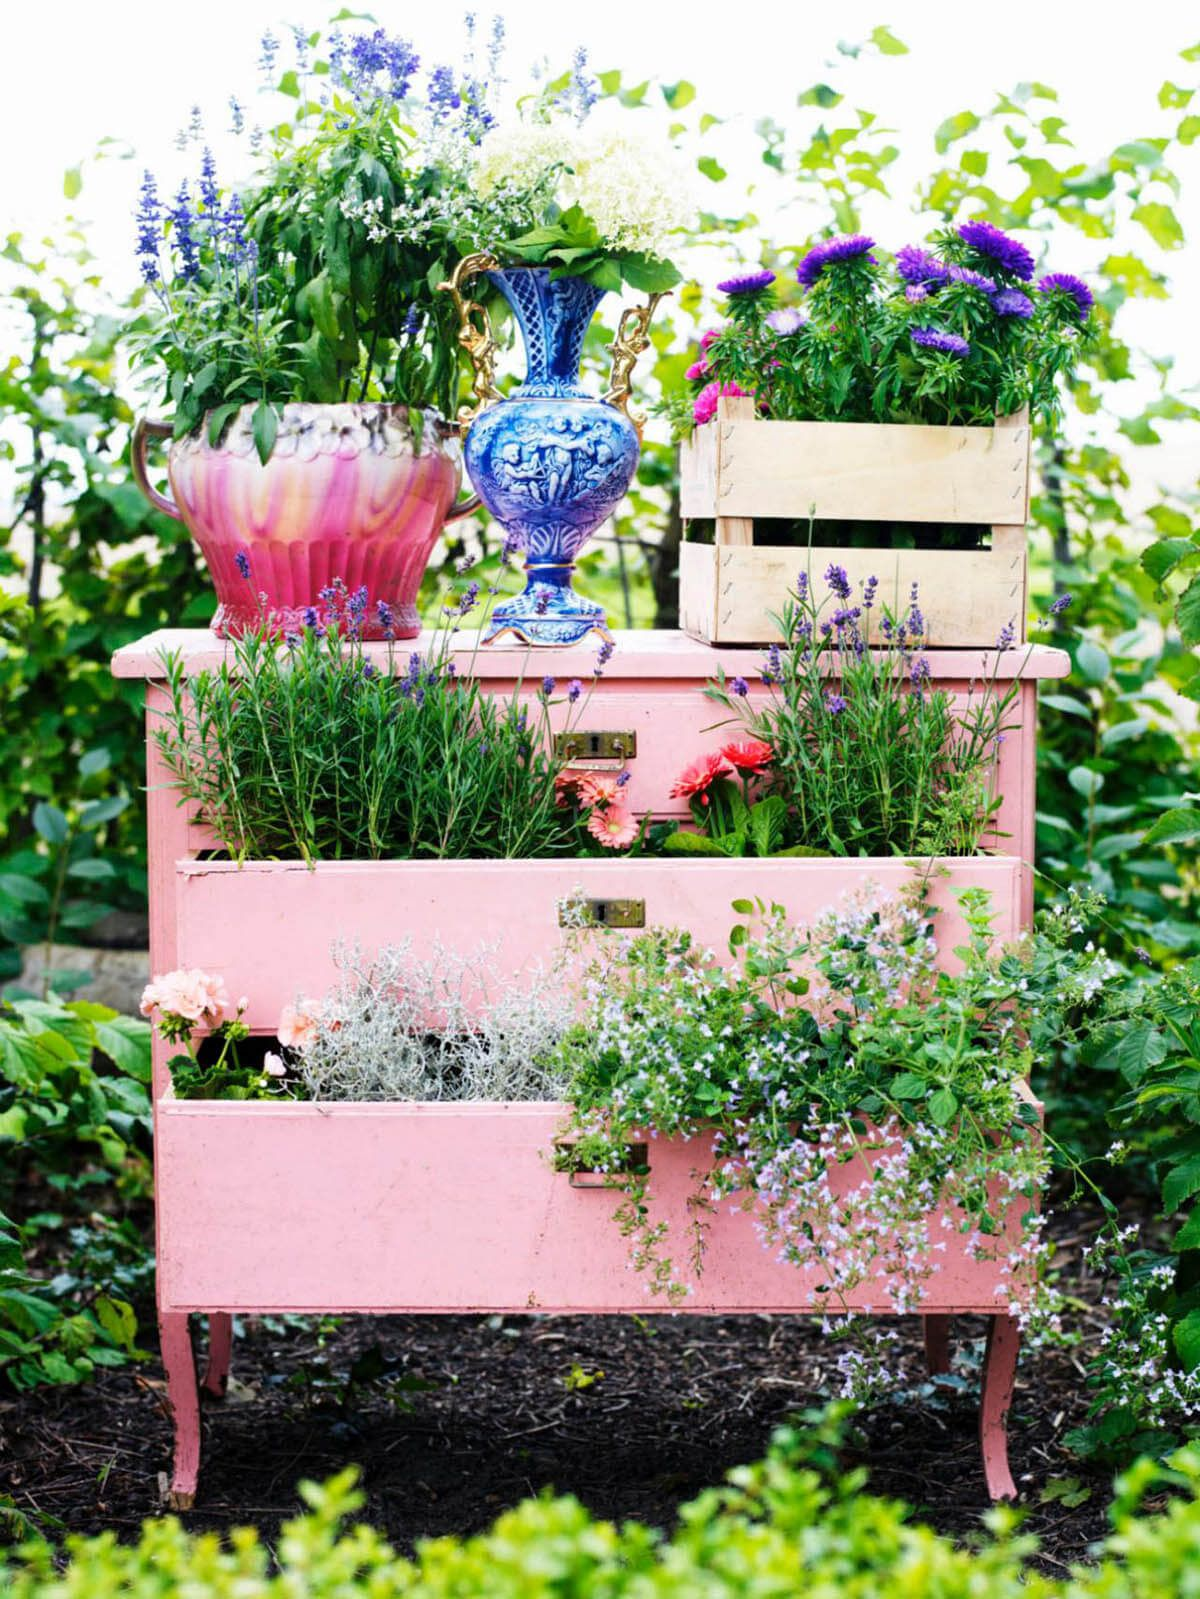 34 Vintage Garden Decor Ideas to Give Your Outdoor Space Vintage ...